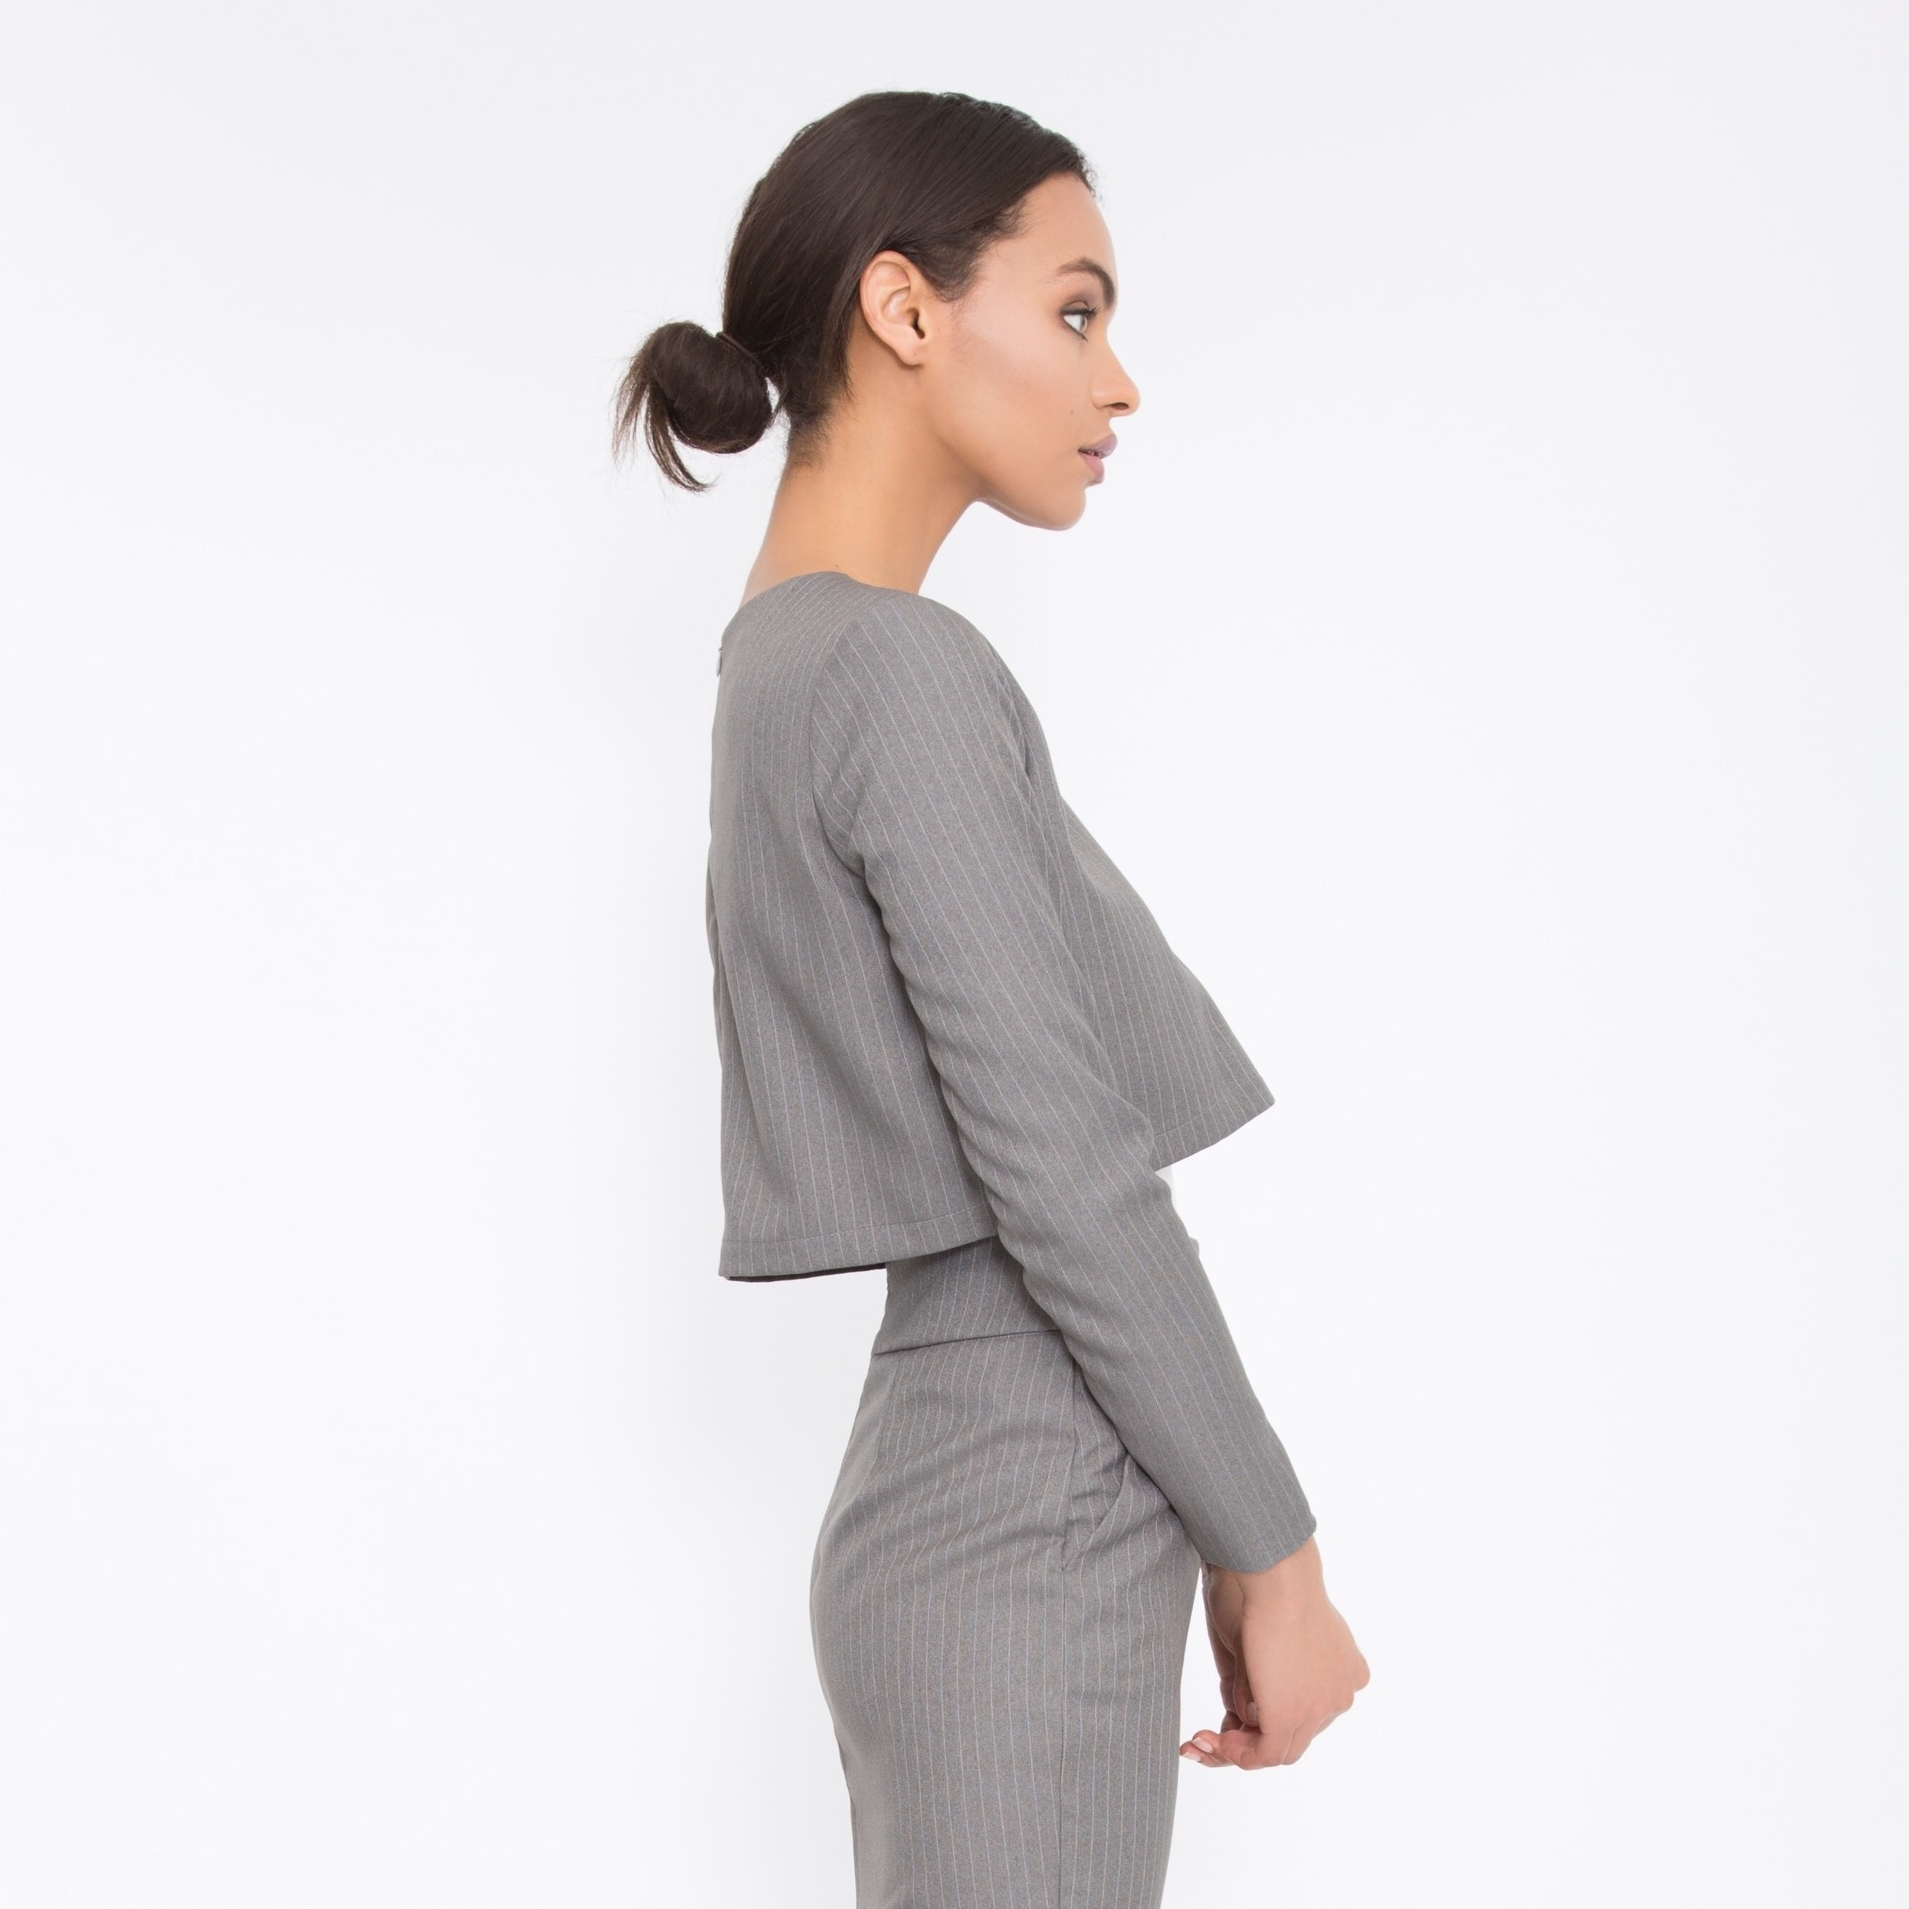 Sophisticated workwear for women